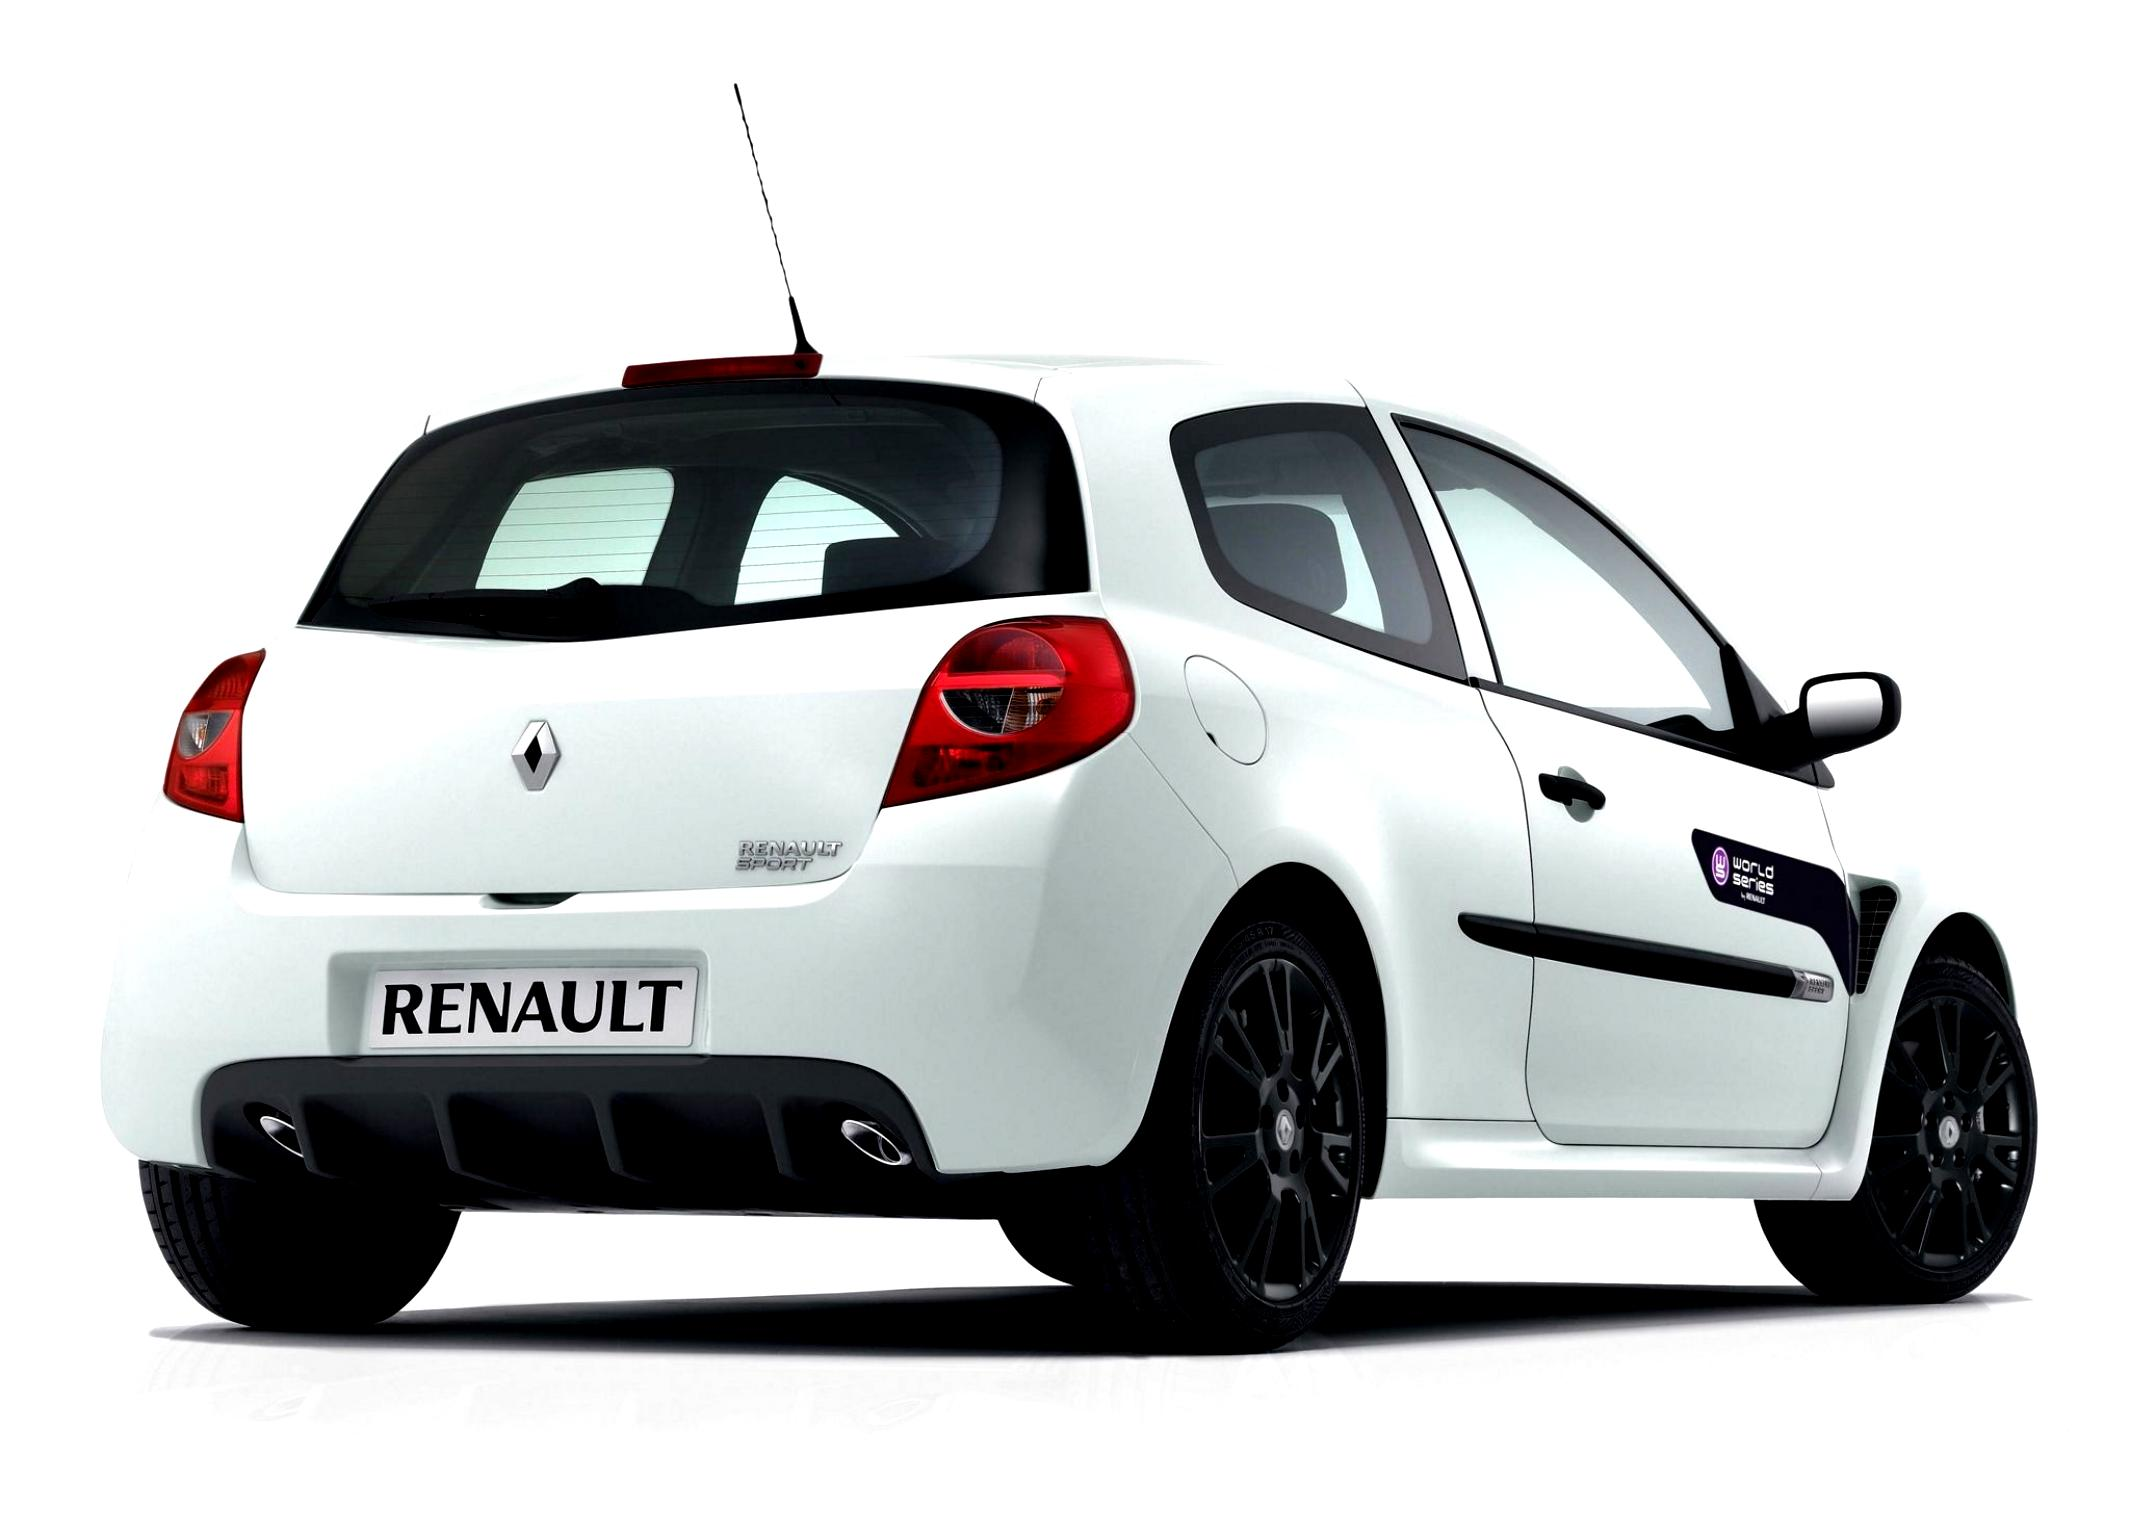 wiring diagram for renault clio 2006. Black Bedroom Furniture Sets. Home Design Ideas